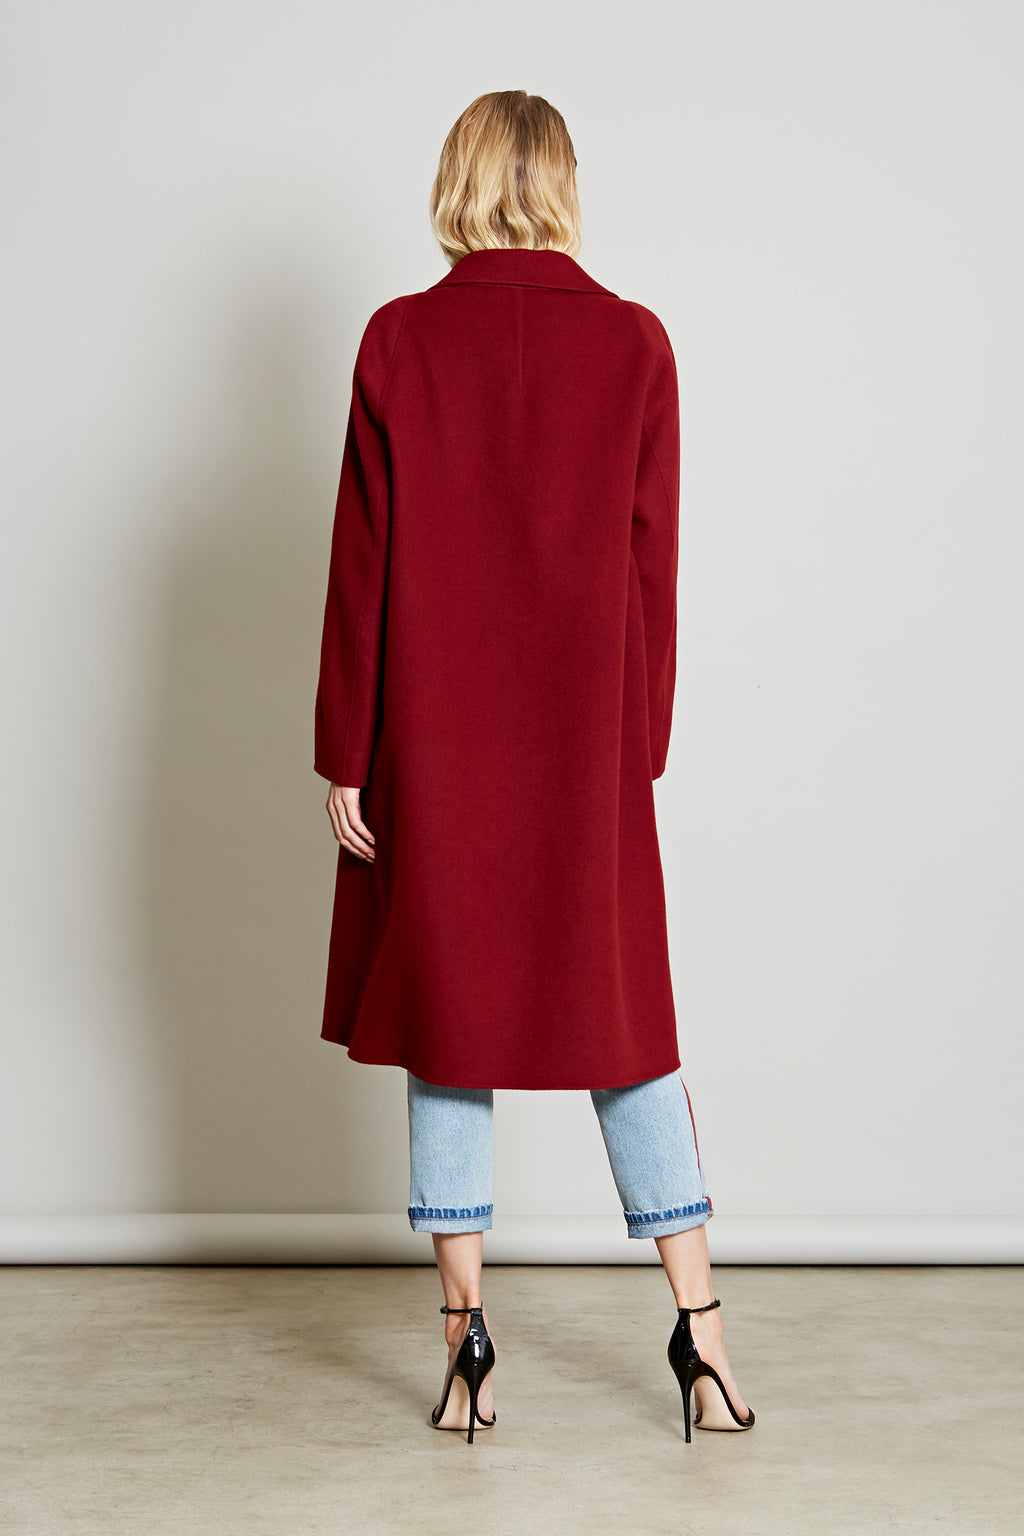 Robert Rodriguez Studio Women's Fashion Designer Resort 2018 Wool Coat